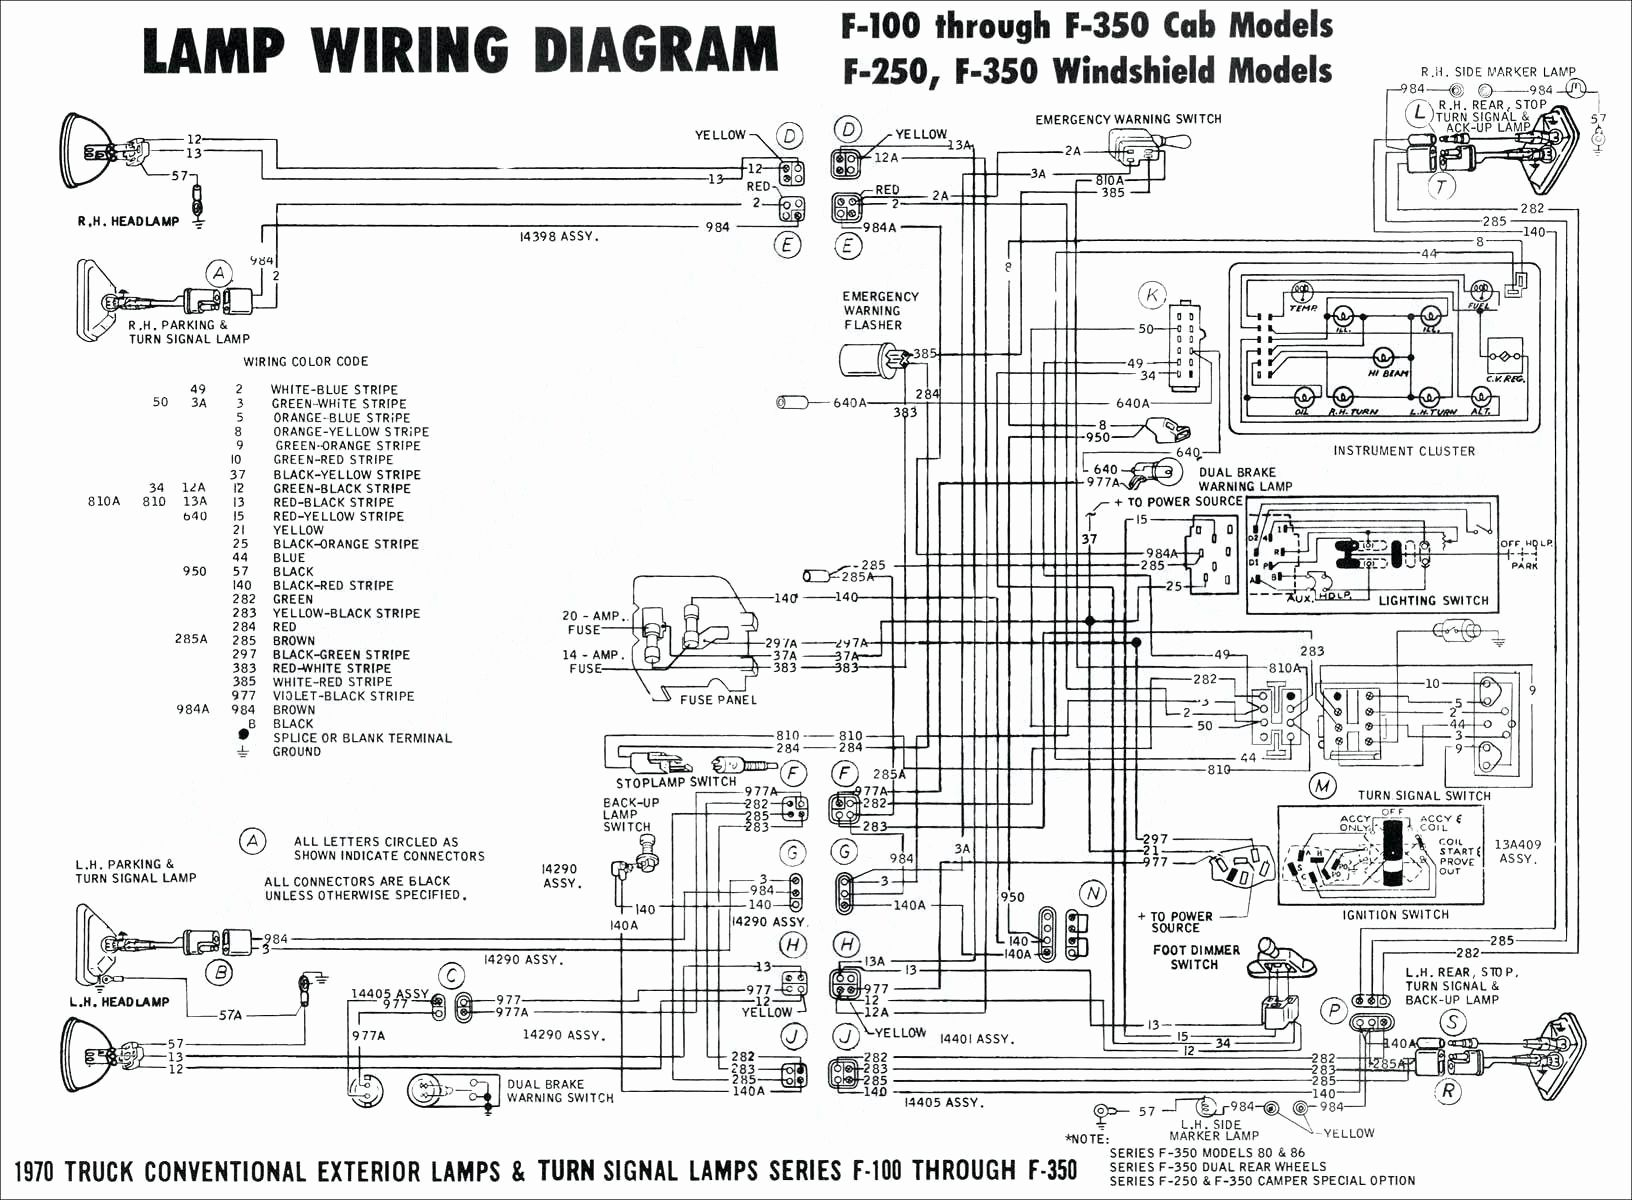 7 Pin Flat Trailer Plug Wiring Diagram Nz - Wiring Diagram Home - Trailer Wiring Diagram 7 Pin Flat Nz